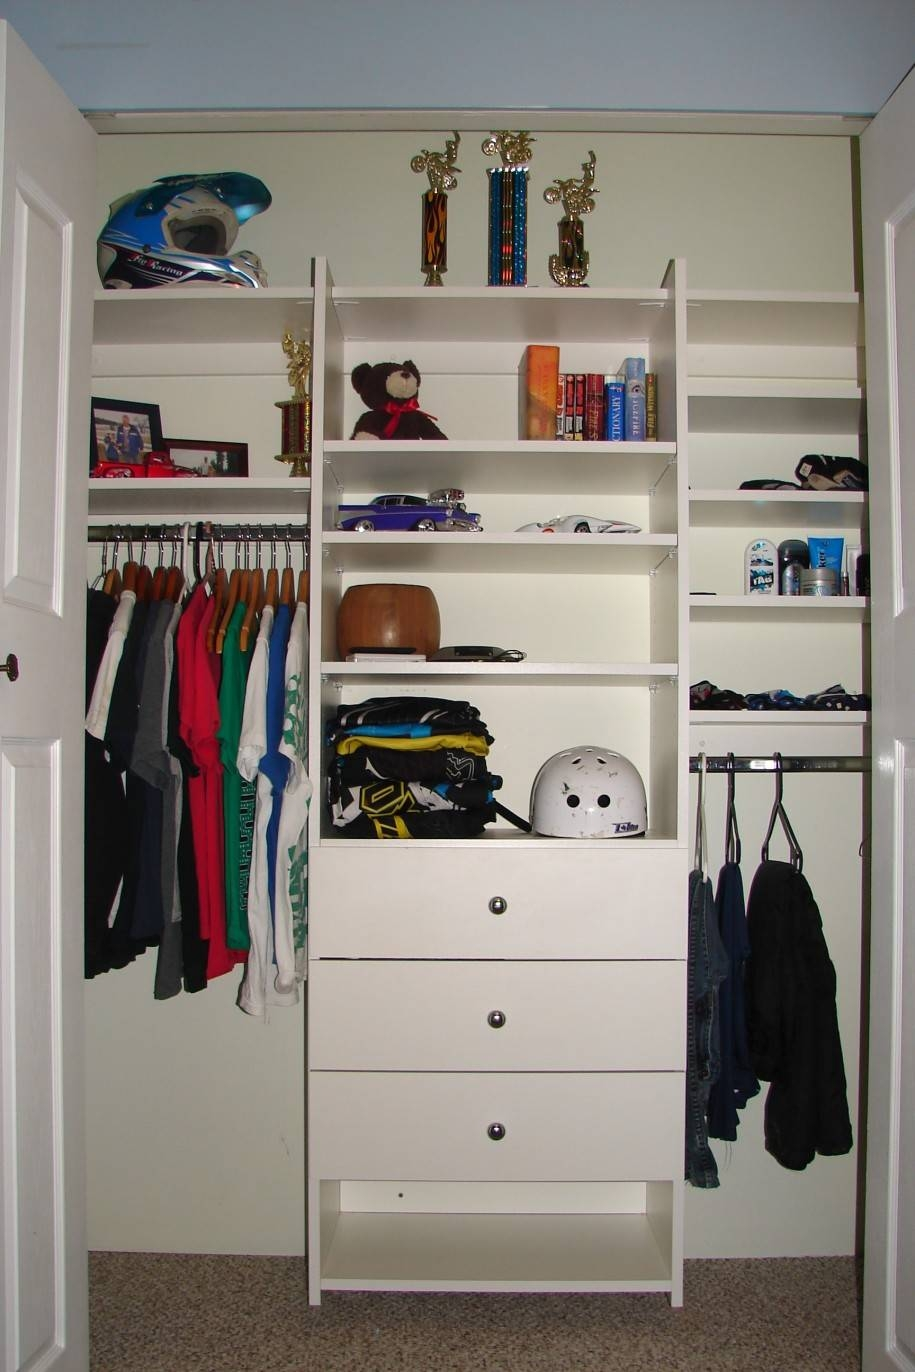 Adorable Closet System With Neatly Open Wardrobe Organize And with Childrens Wardrobes With Drawers And Shelves (Image 1 of 30)